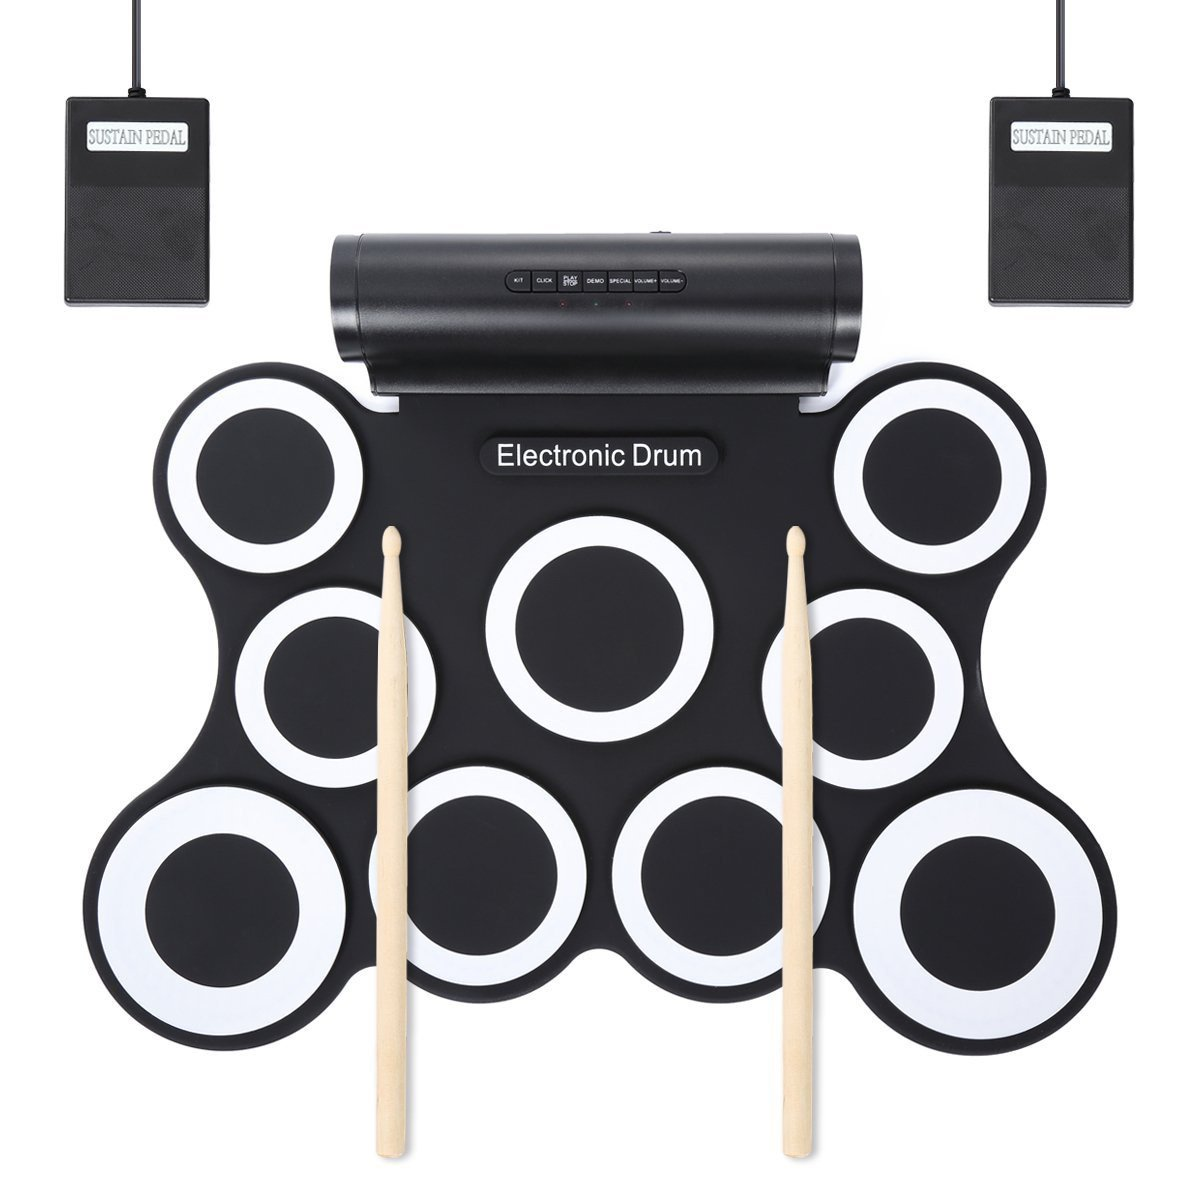 HJJH Portable Drums,Digital Foldable Roll-Up Drum Pad,9 Pad Digital Drum Kit, Touch Sensitivity, Wireless Electric Drums, Drum Machine, Electric Drum Pads by HJJH